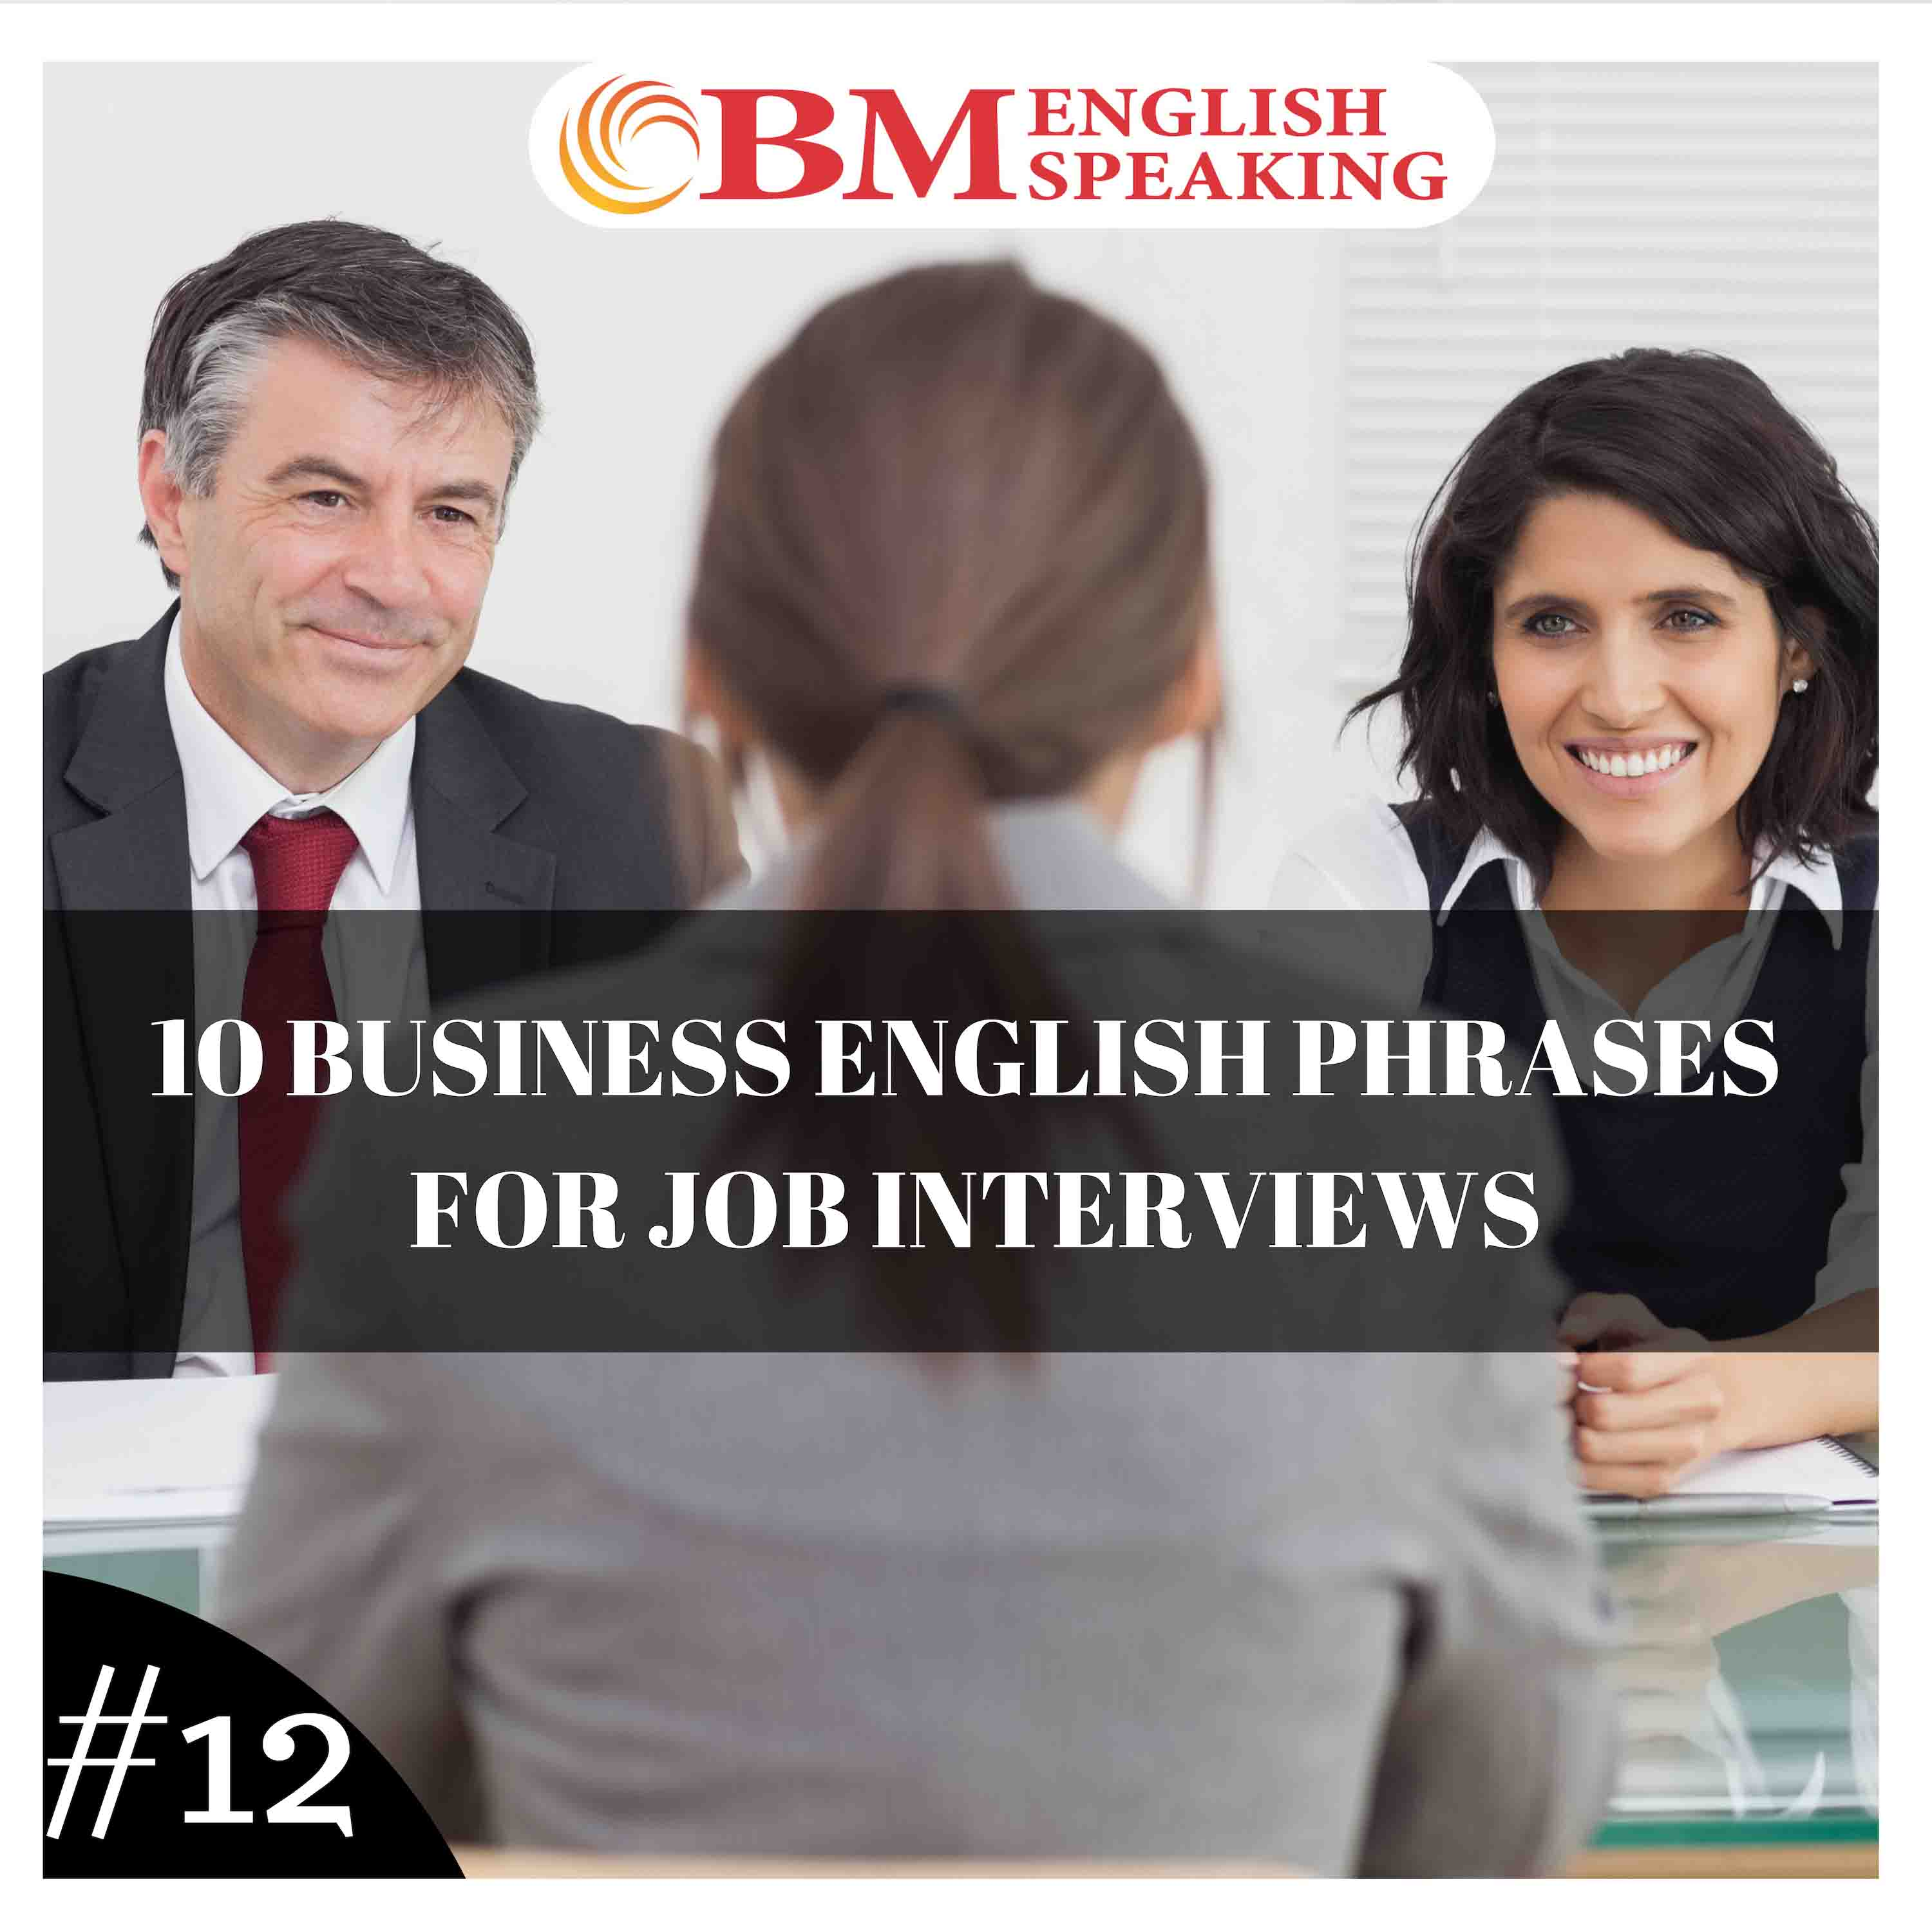 10 Business English Phrases for Job Interviews